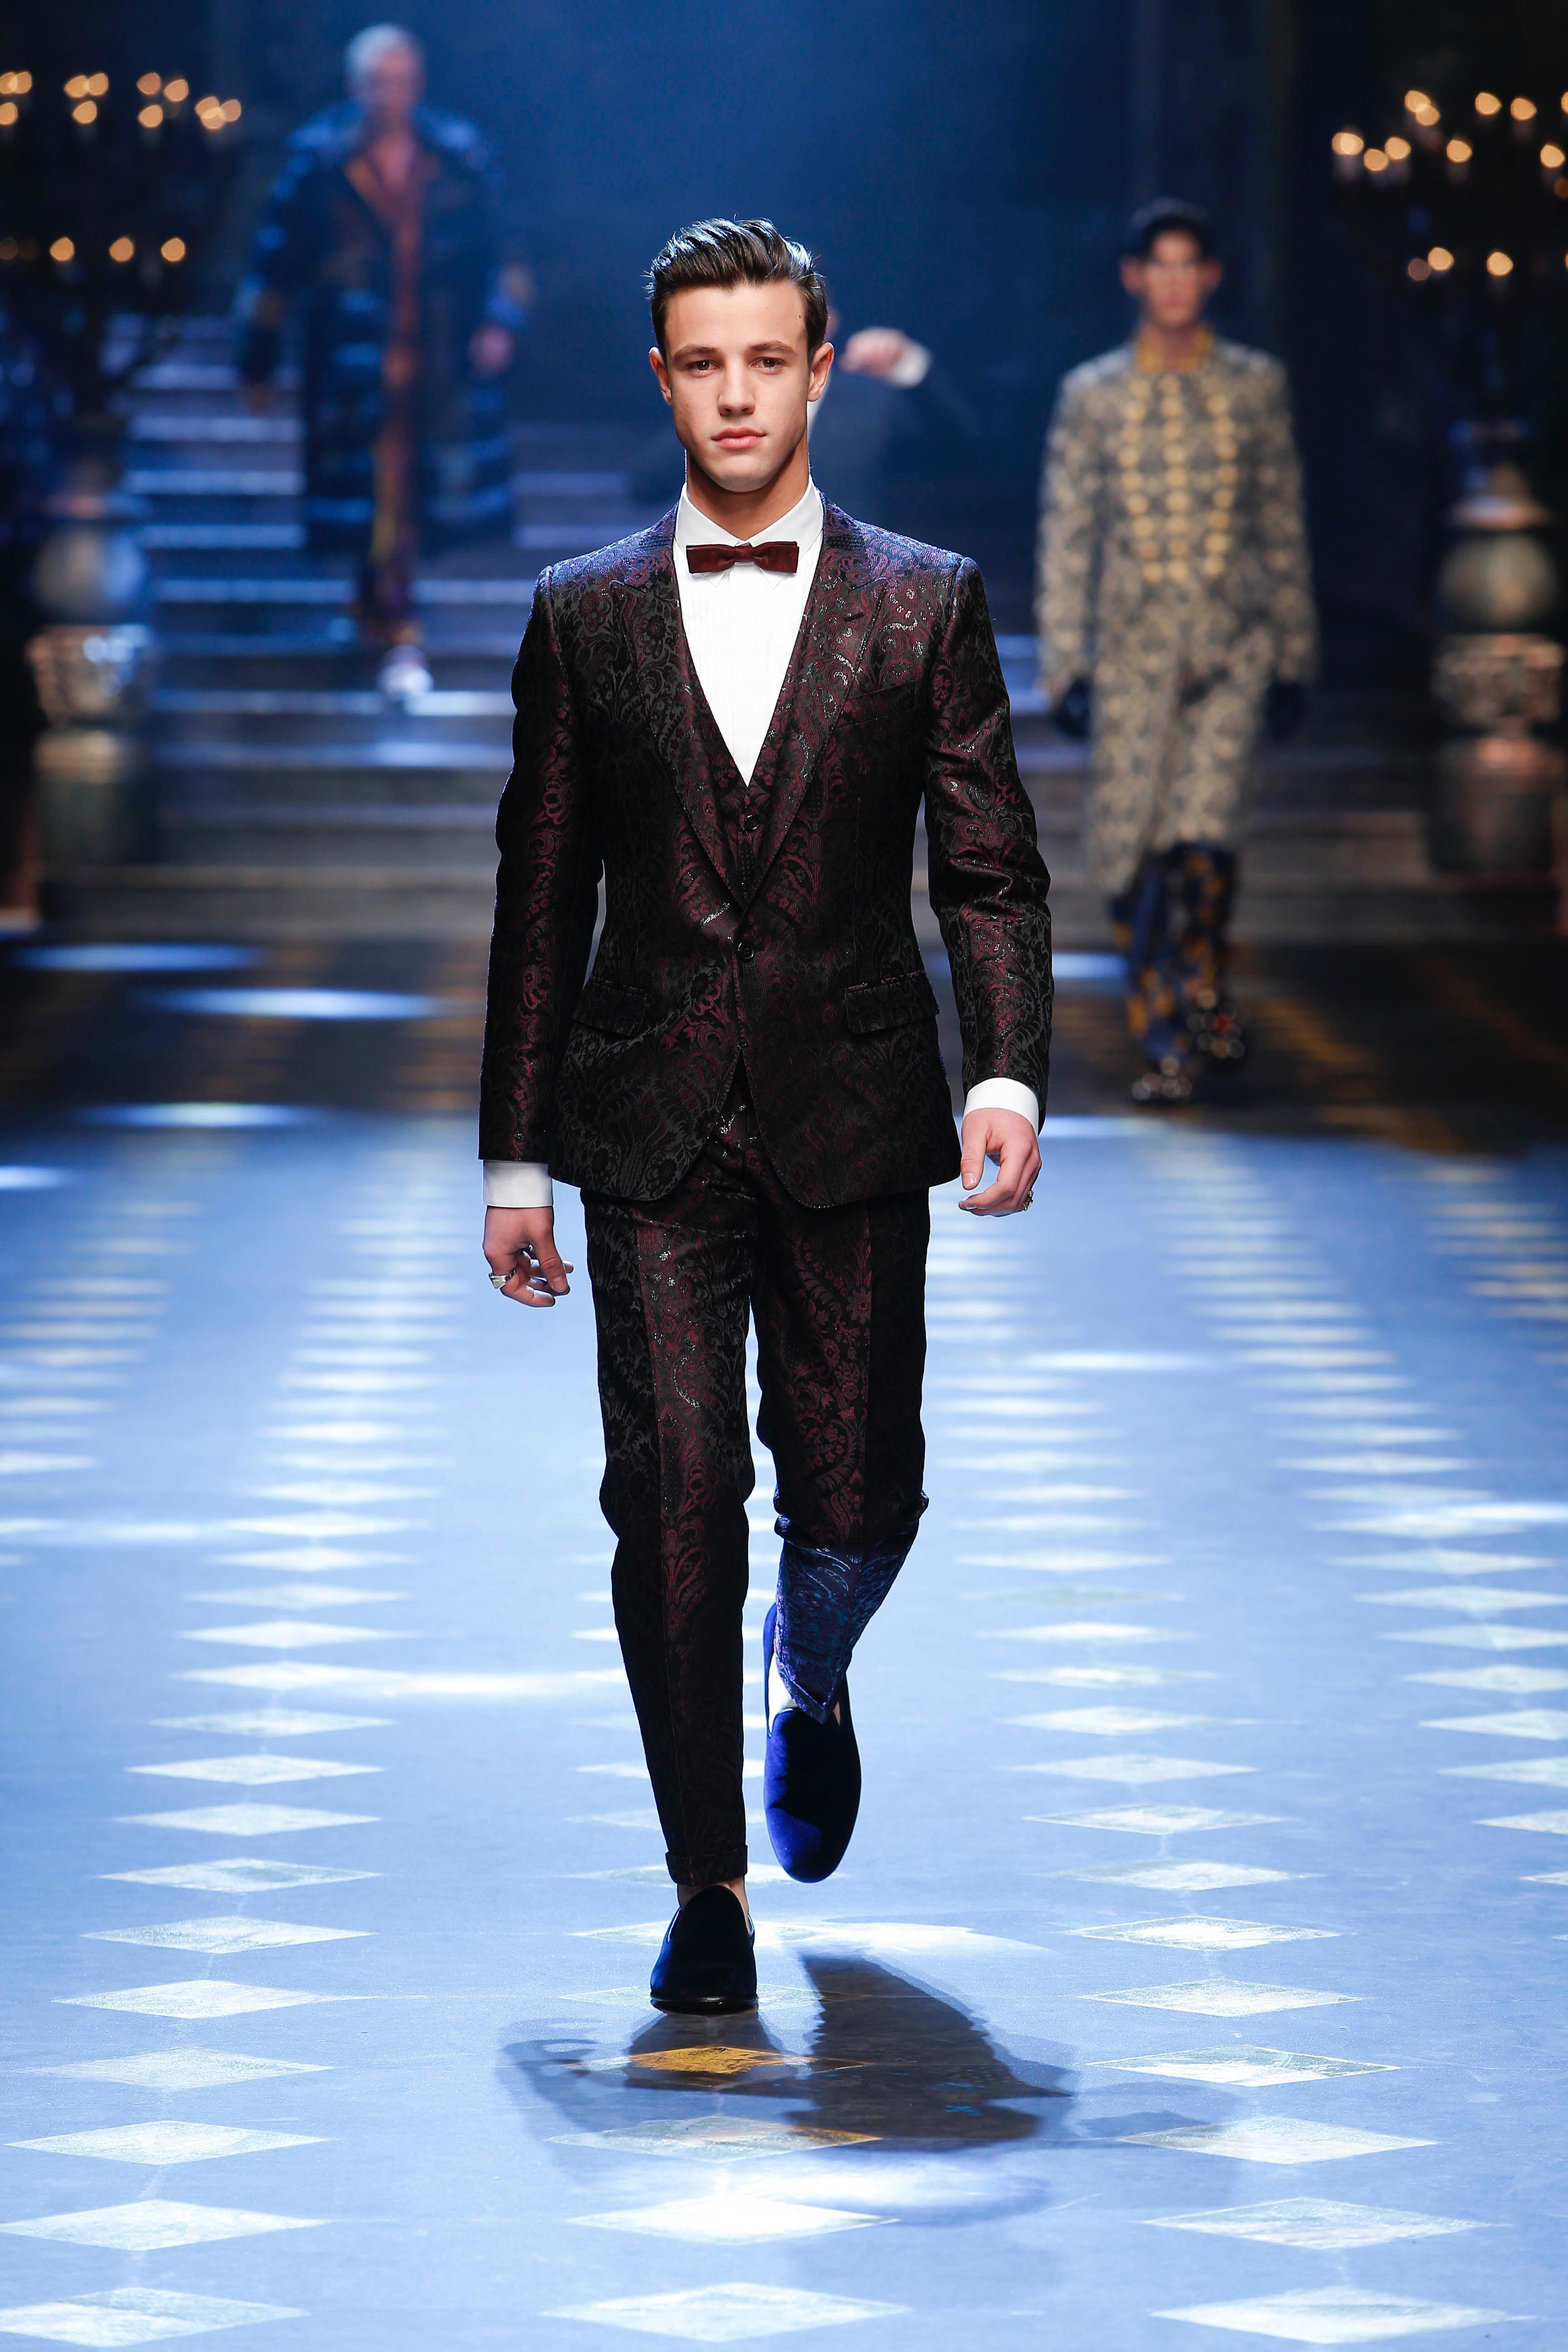 Moda Guardaroba Maschile Moda Uomo I Must Have Per Il Guardaroba Dell Inverno 2017 Tgcom24